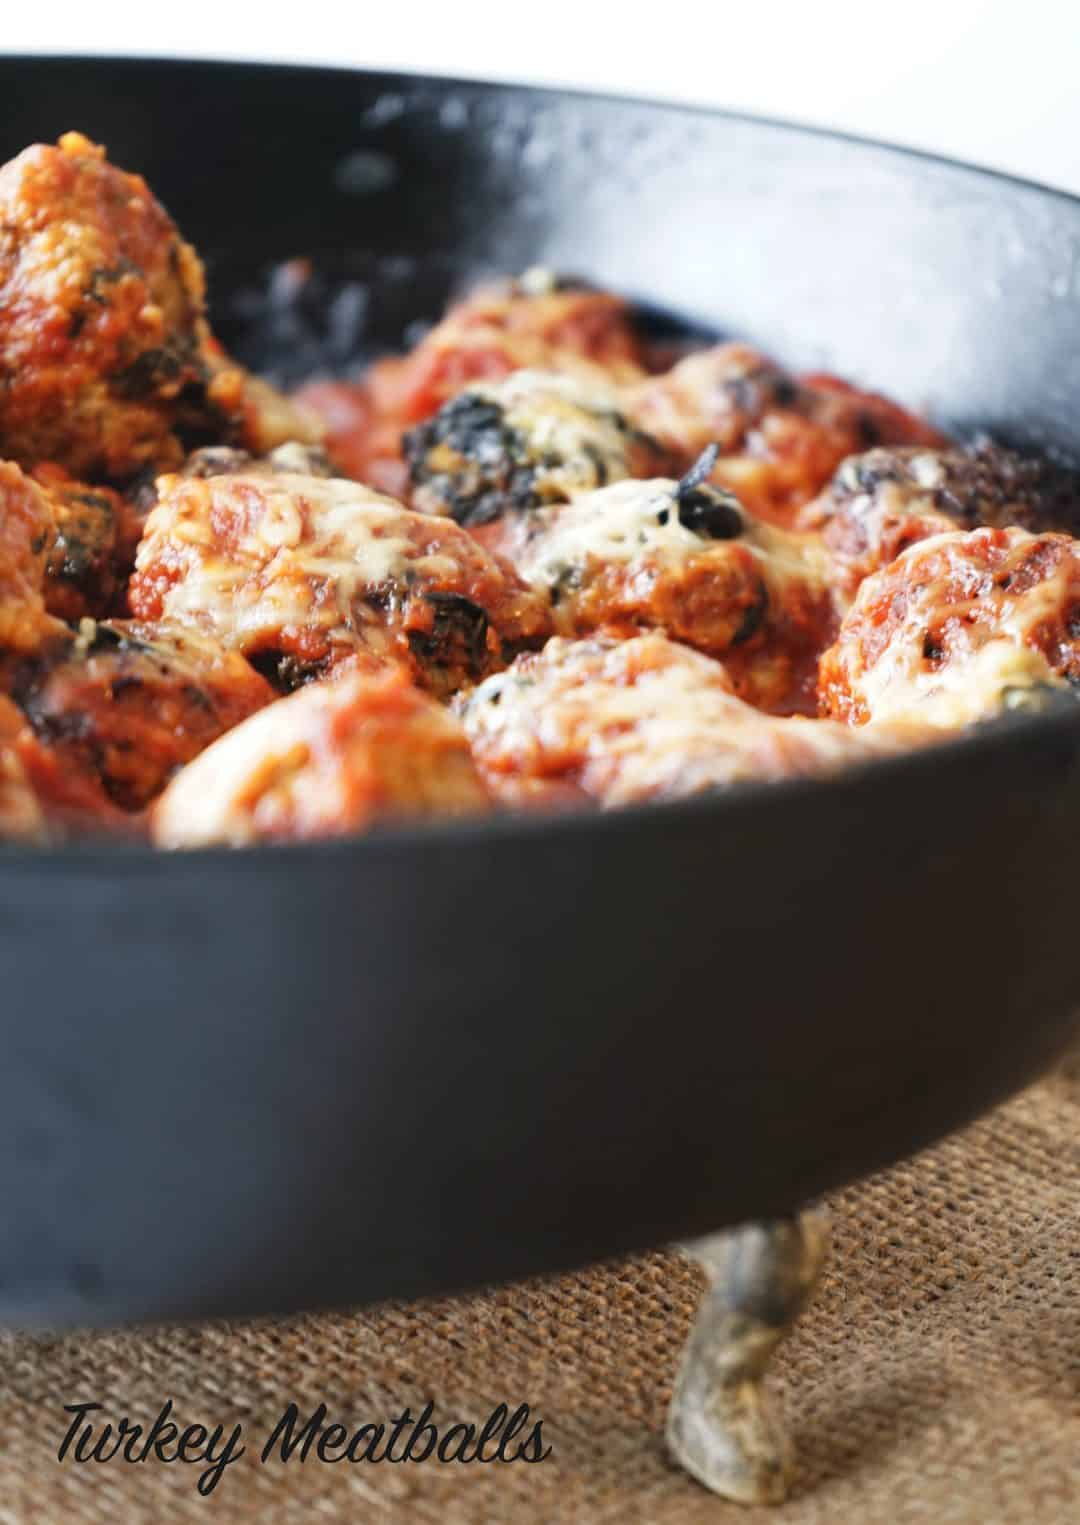 Turkey meatballs in a skillet in a marinara sauce and topped with cheese.